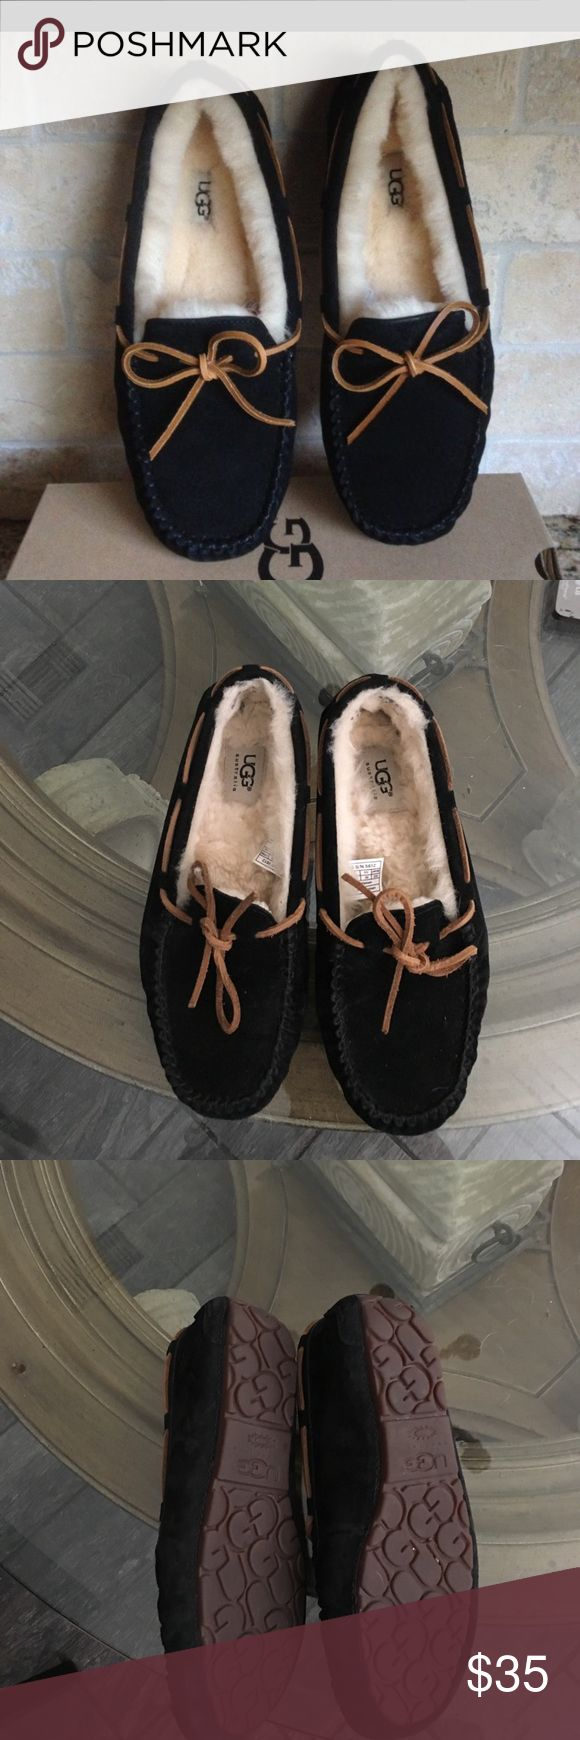 UGG Dakota slippers Slipping into the UGG Dakota is like wrapping your foot in a cloud. This fully-lined, moccasin-style UGG slipper is deceptively simple to the eye, yet is thoughtfully designed with every aspect of your comfort and convenience in mind. Reminiscent of the classic boat shoe, the Dakota's supple suede and 360° leather lacing lend a casual vibe. Pair this go-anywhere, do-anything slipper with yoga pants or your favorite jeans for a look that's as cute as it is comfy.  No flaws…